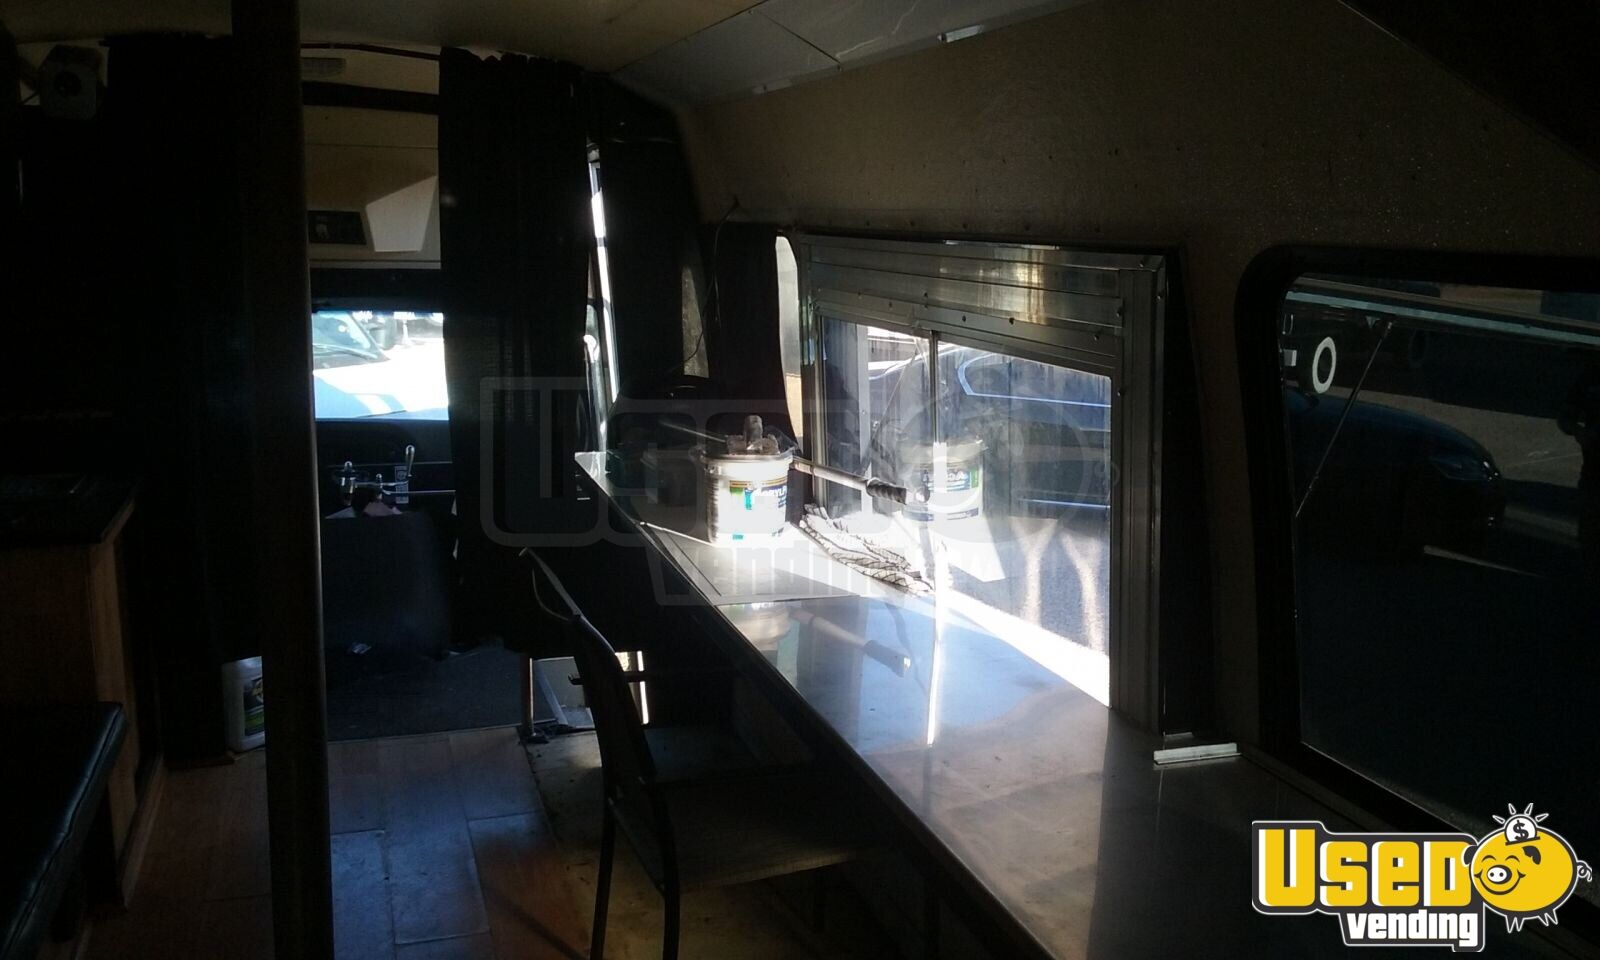 1995 Ford Econ Lt318 Food Truck Work Table Arizona Diesel Engine for Sale - 8